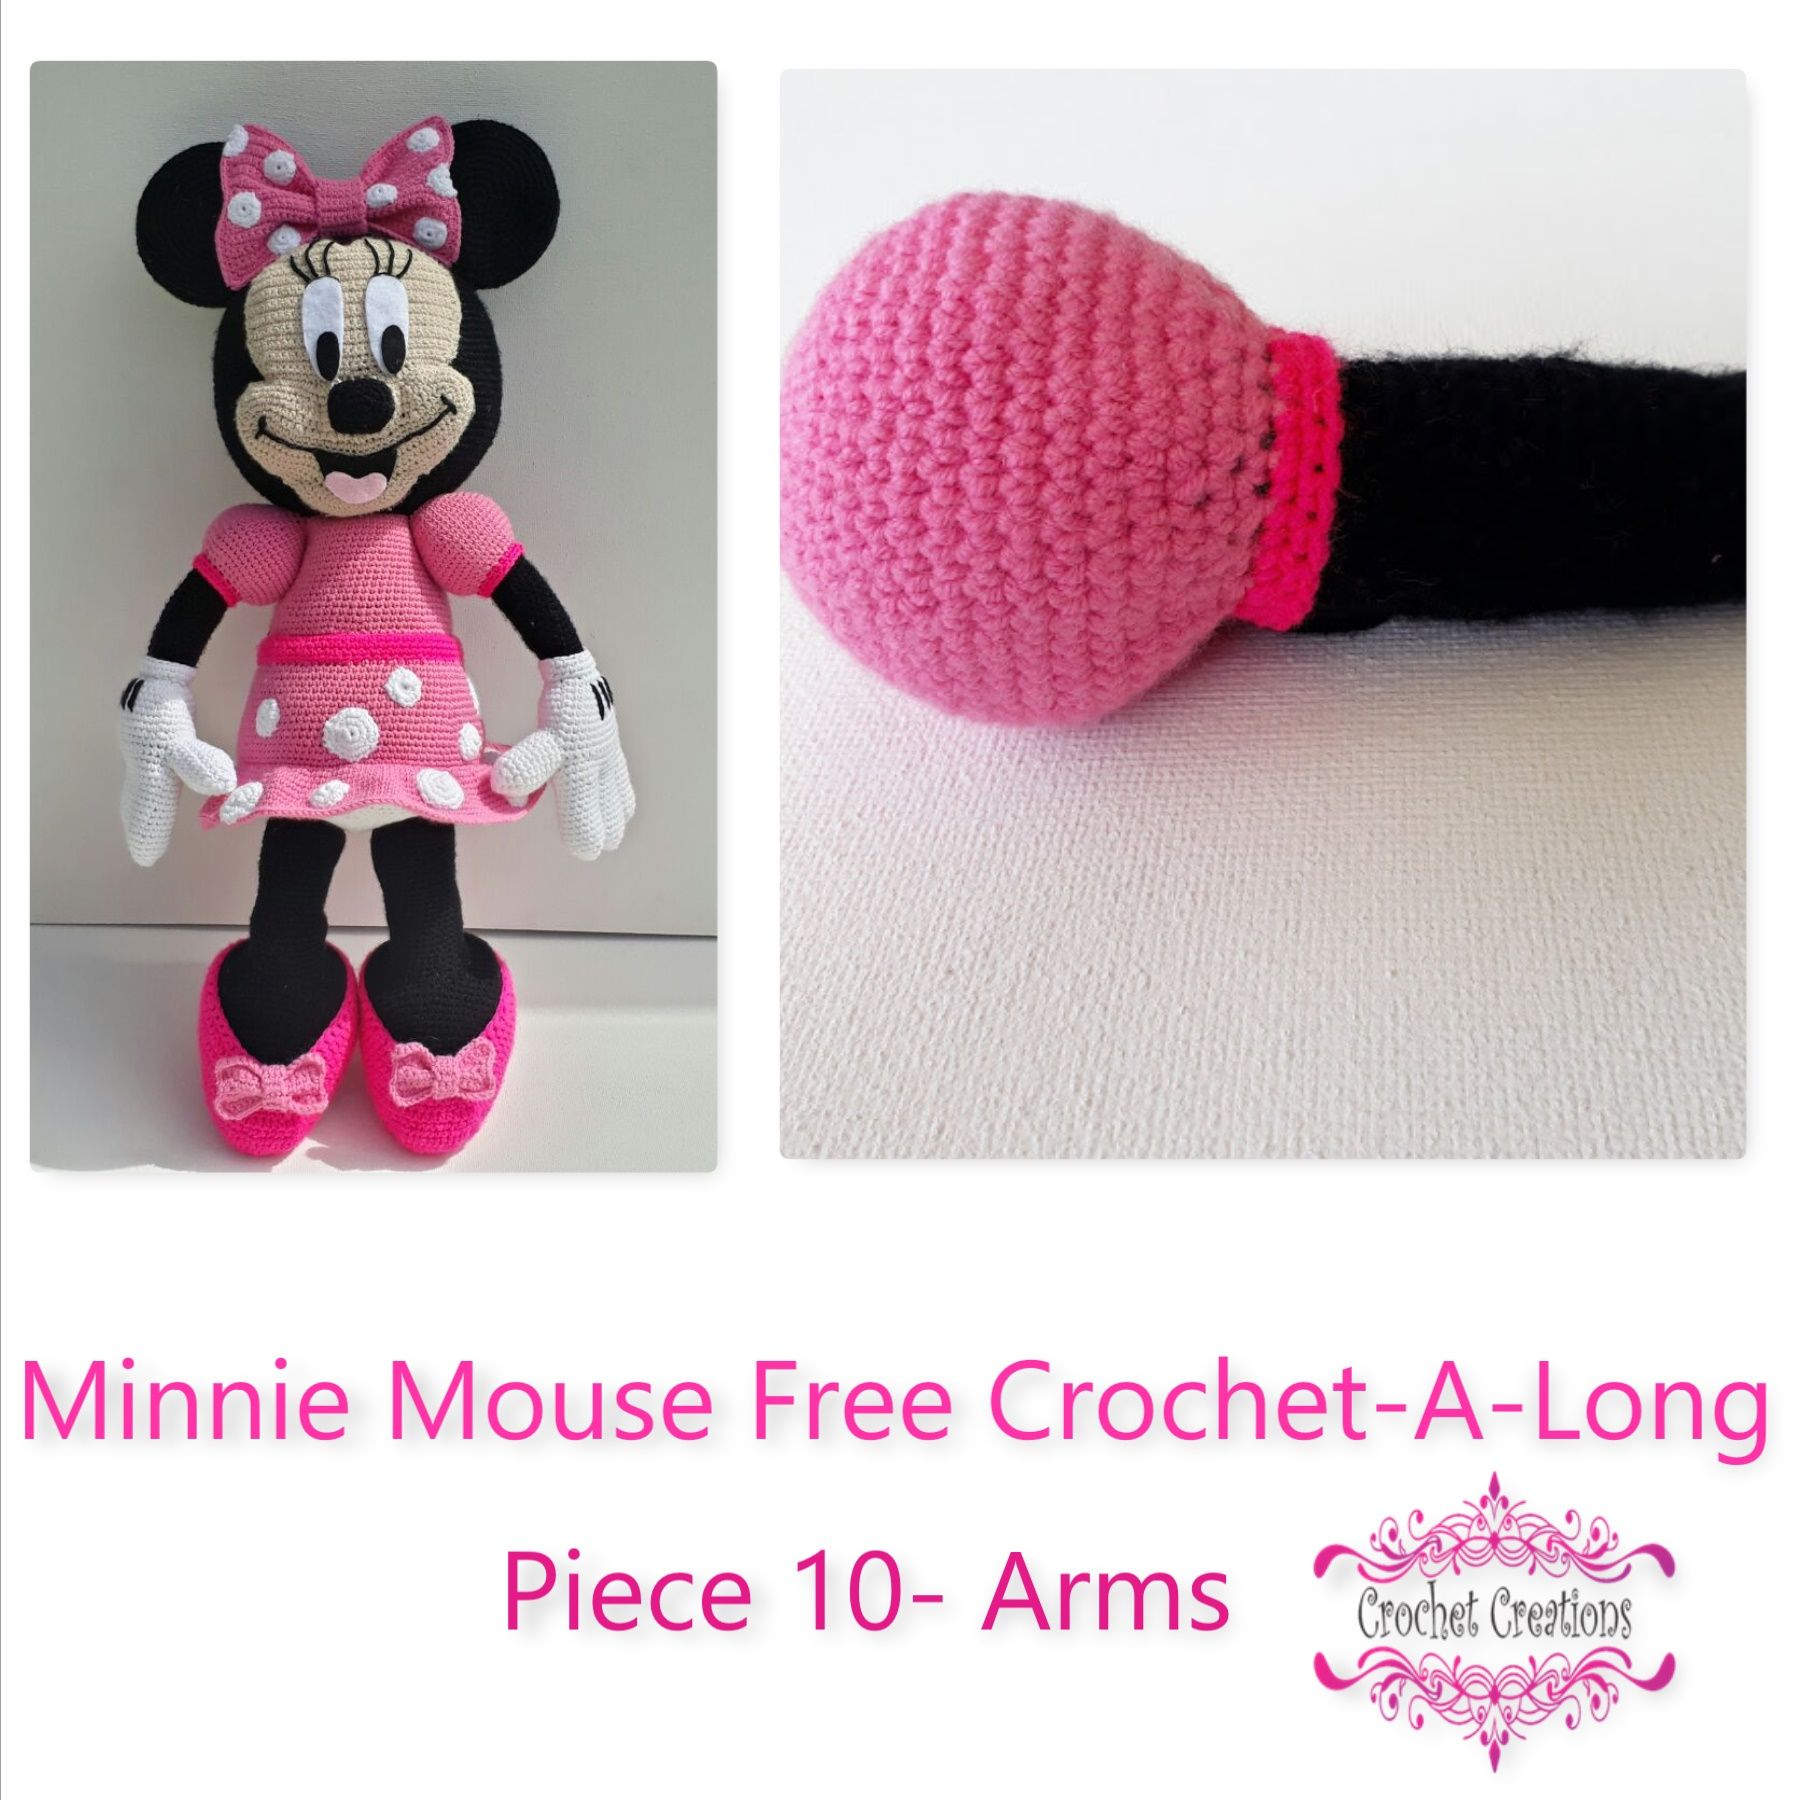 Minnie Mouse Free Crochet-A-Long- Piece 10- Arms | Arm crocheting ...